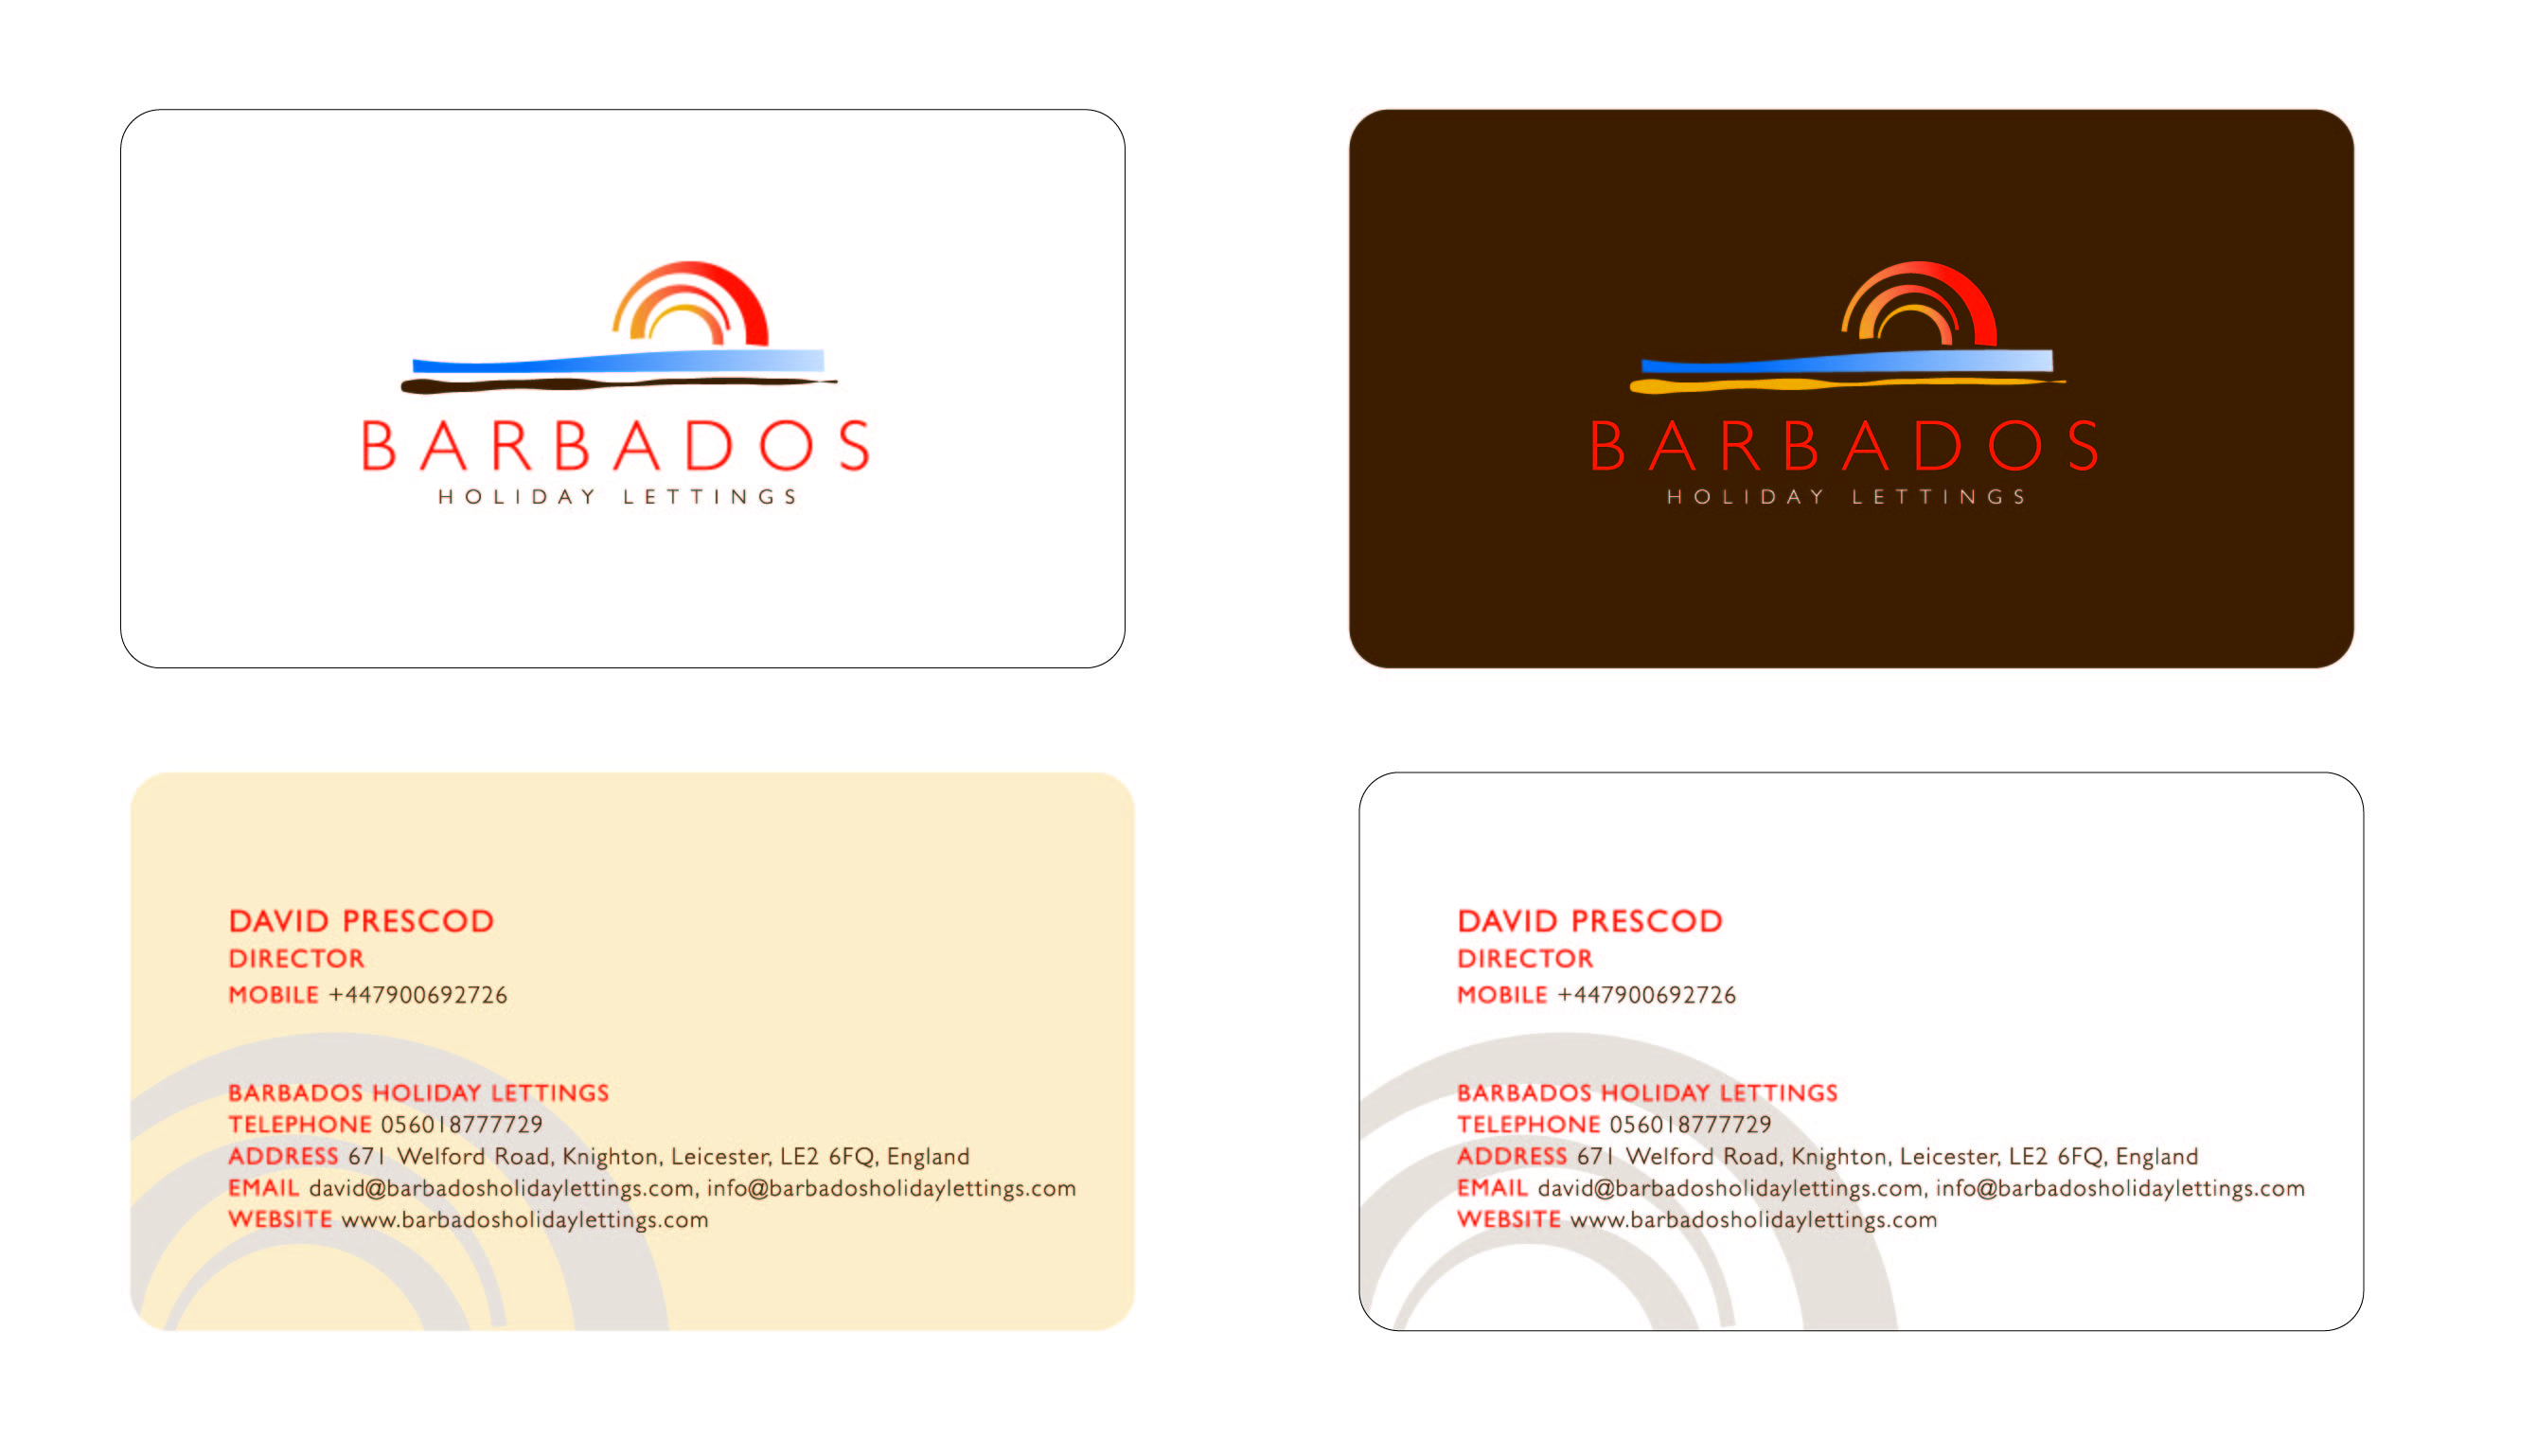 Business card design for barbados holiday lettings by rising sun business card design by rising sun for barbados holiday lettings stat design 1005 reheart Images